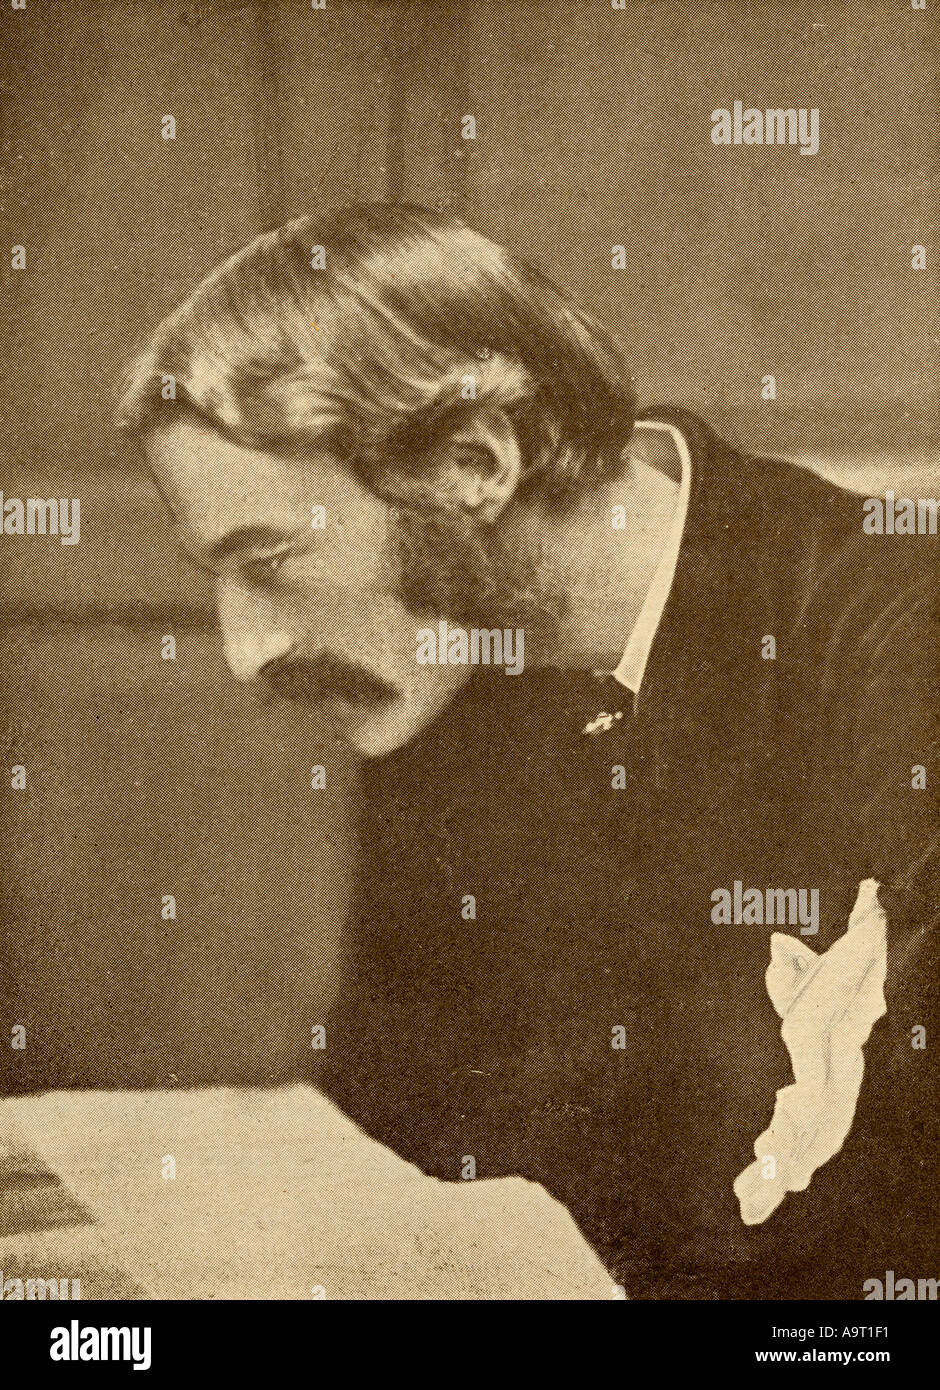 Andrew Lang, 1844 -1912. Scottish poet, novelist, literary critic, and contributor to the field of anthropology. - Stock Image